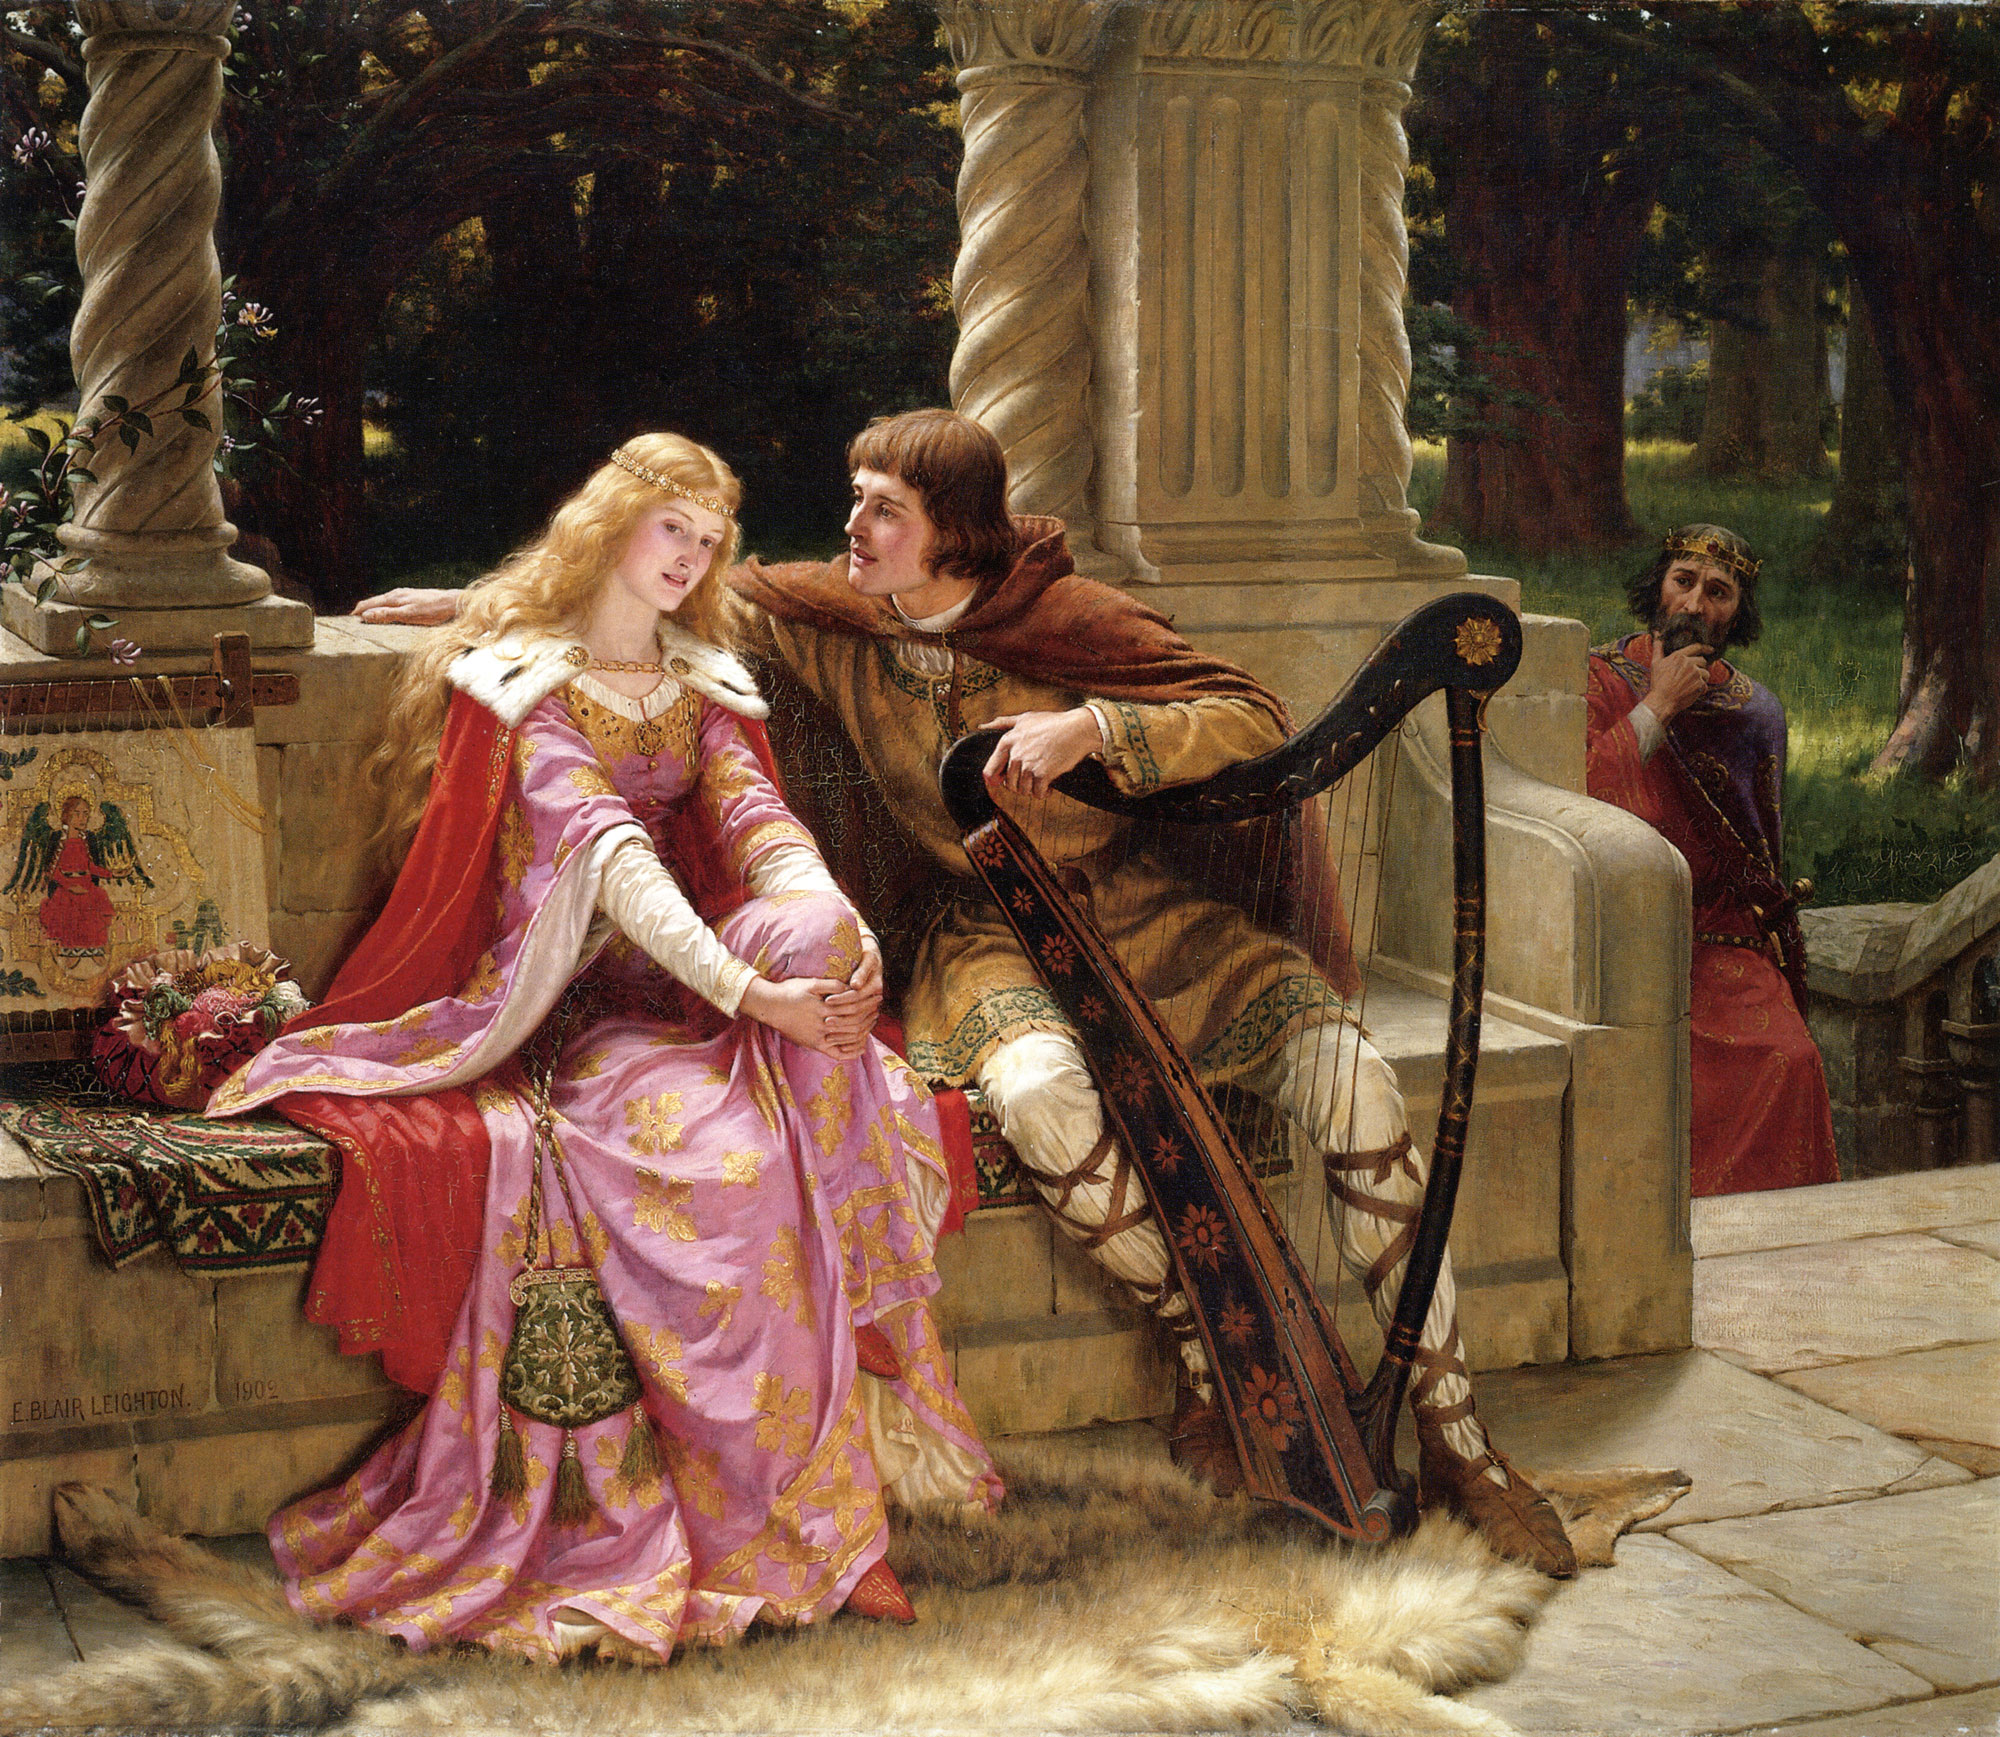 By Edmund Leighton - Art Renewal Center – description, Public Domain